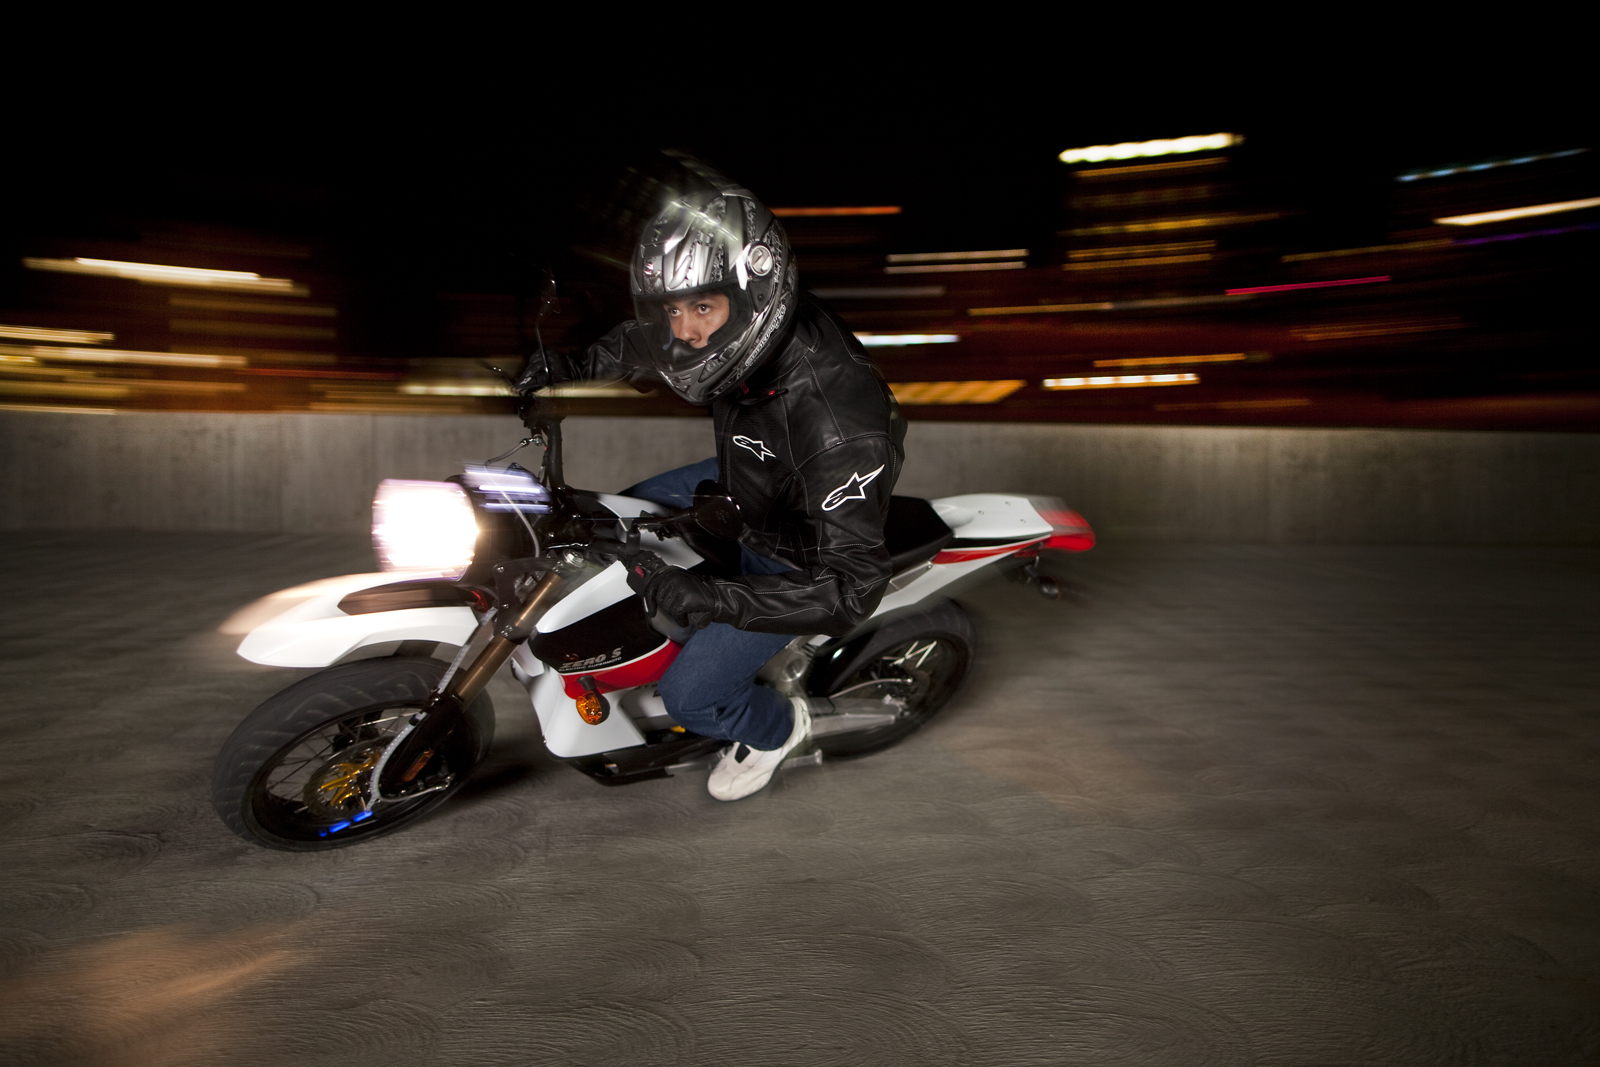 '.2010 Zero S Electric Motorcycle: Los Angeles - Garage Nightime.'